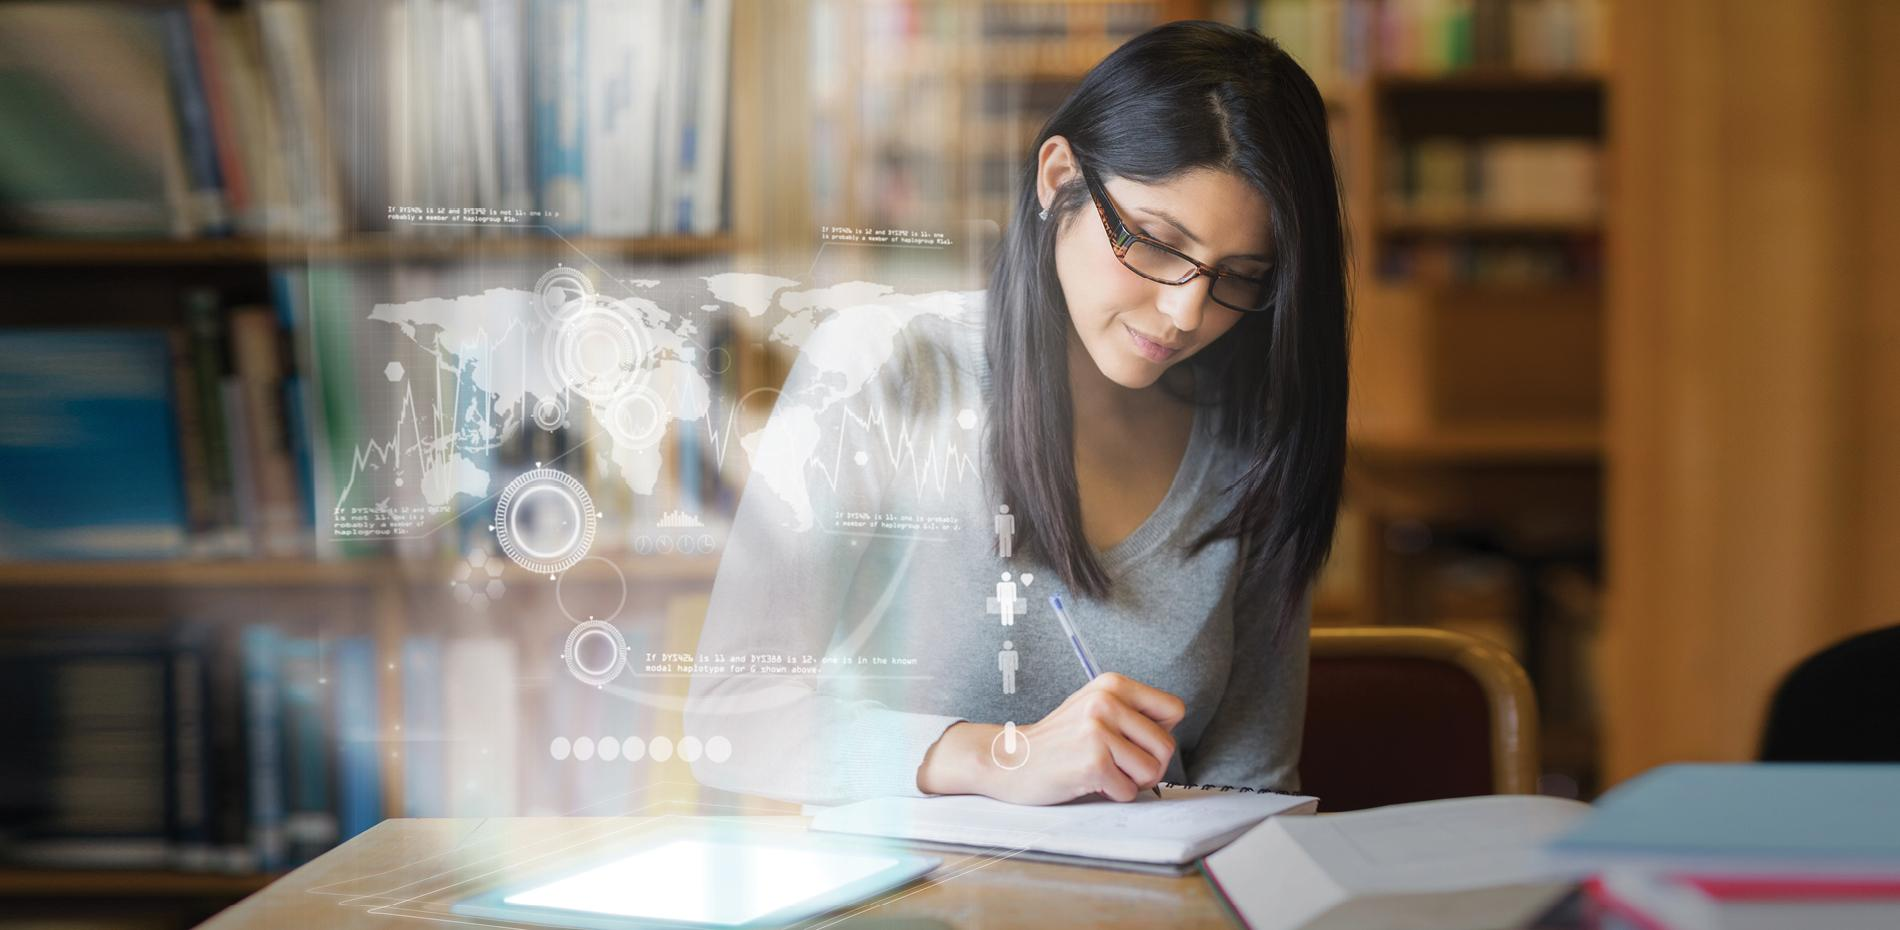 Woman looking over book with digital images in front of her